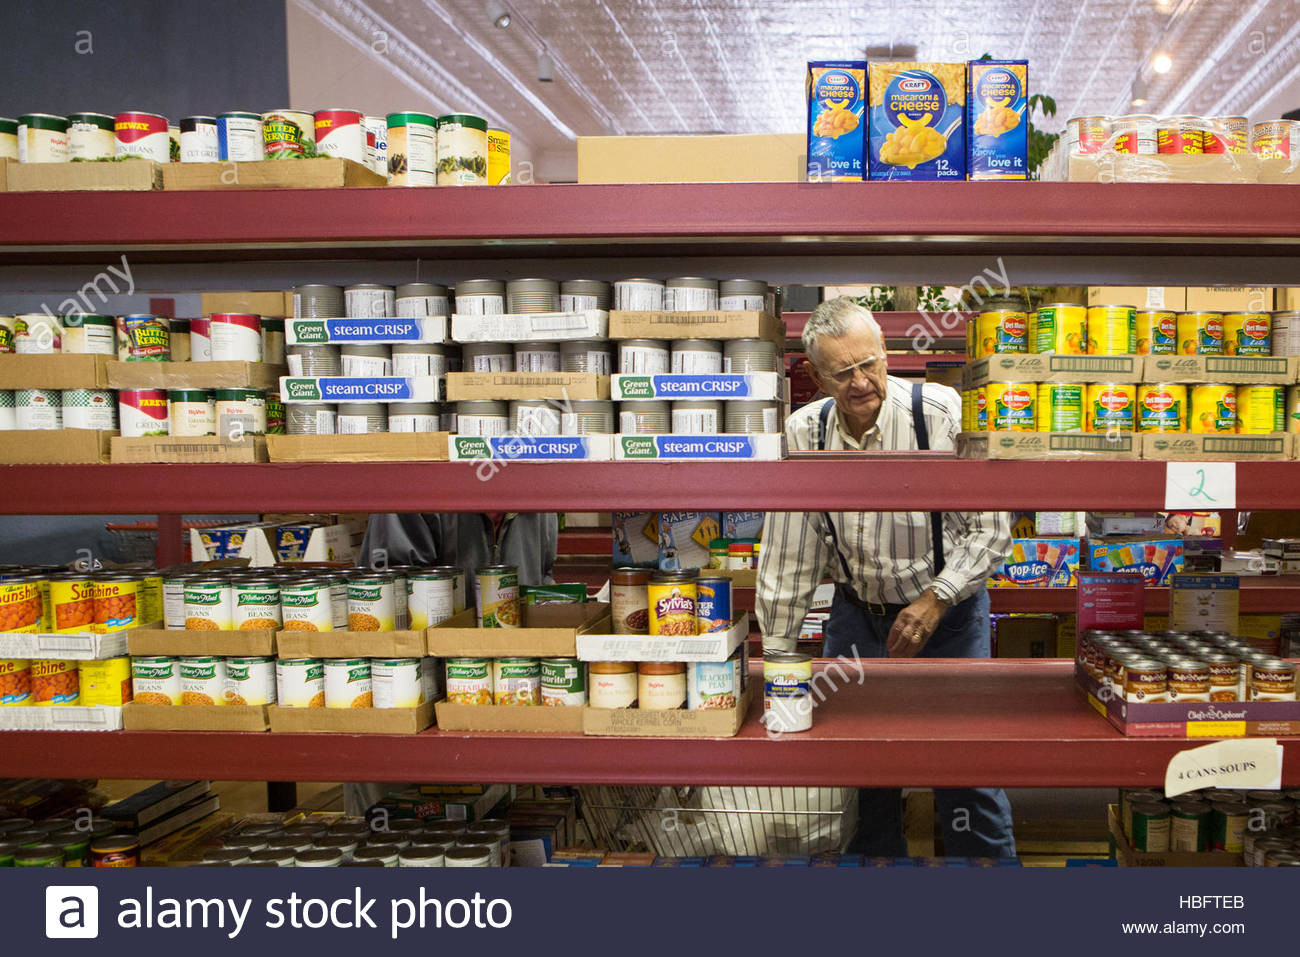 Best ideas about River Food Pantry . Save or Pin A man chooses food at the Jordan River Food Pantry Stock Now.